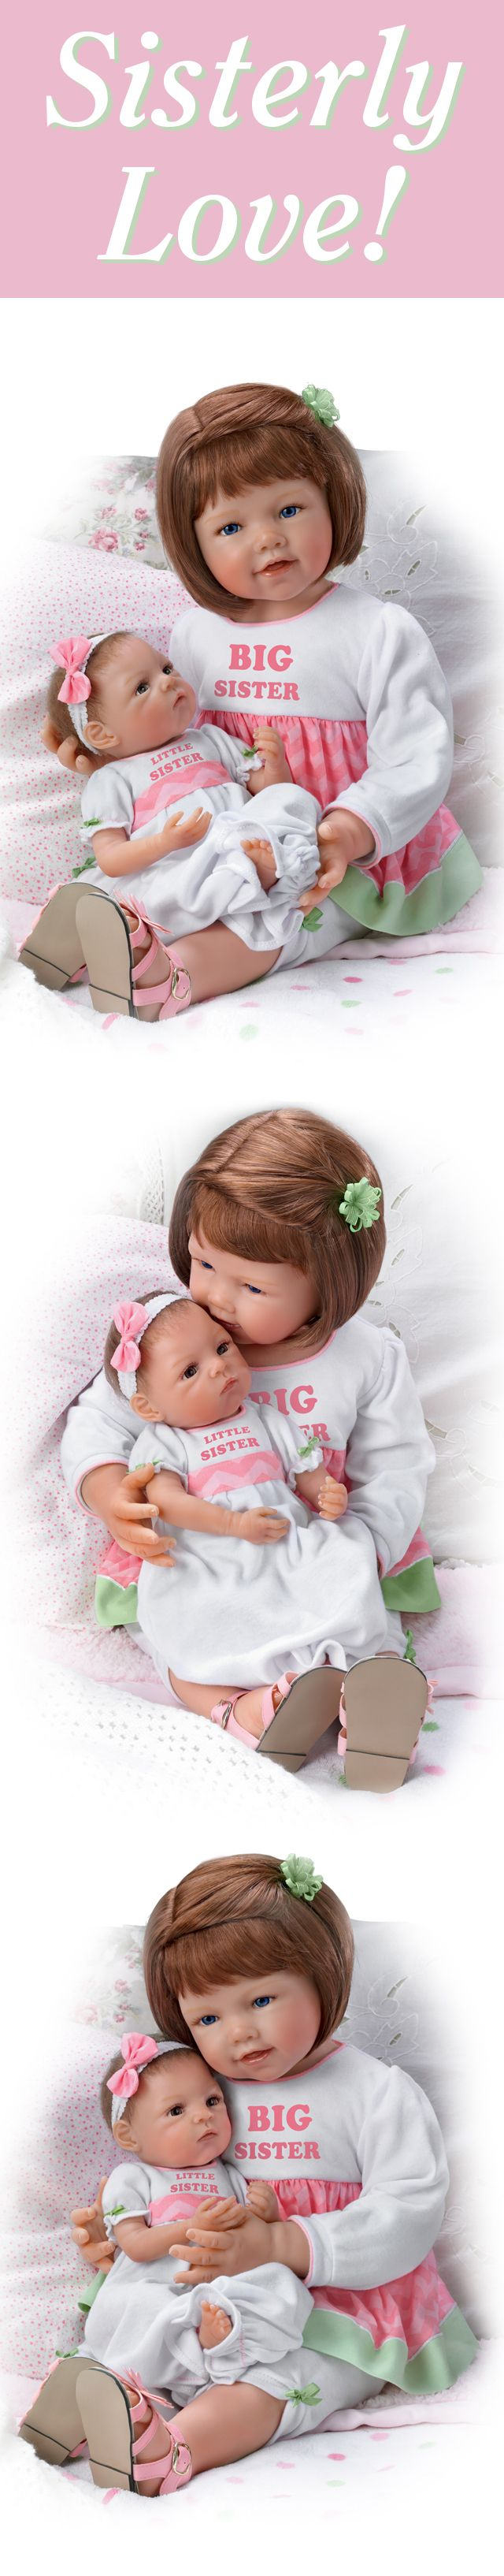 "Celebrate sisterly love with this limited-edition lifelike baby doll set by Master Doll Artist Waltraud Hanl! This exclusive Signature Edition doll set arrives with an adorable 7-piece ensemble which includes their ""Big Sister"" and ""Little Sister"" ensembles! Shop Now!"